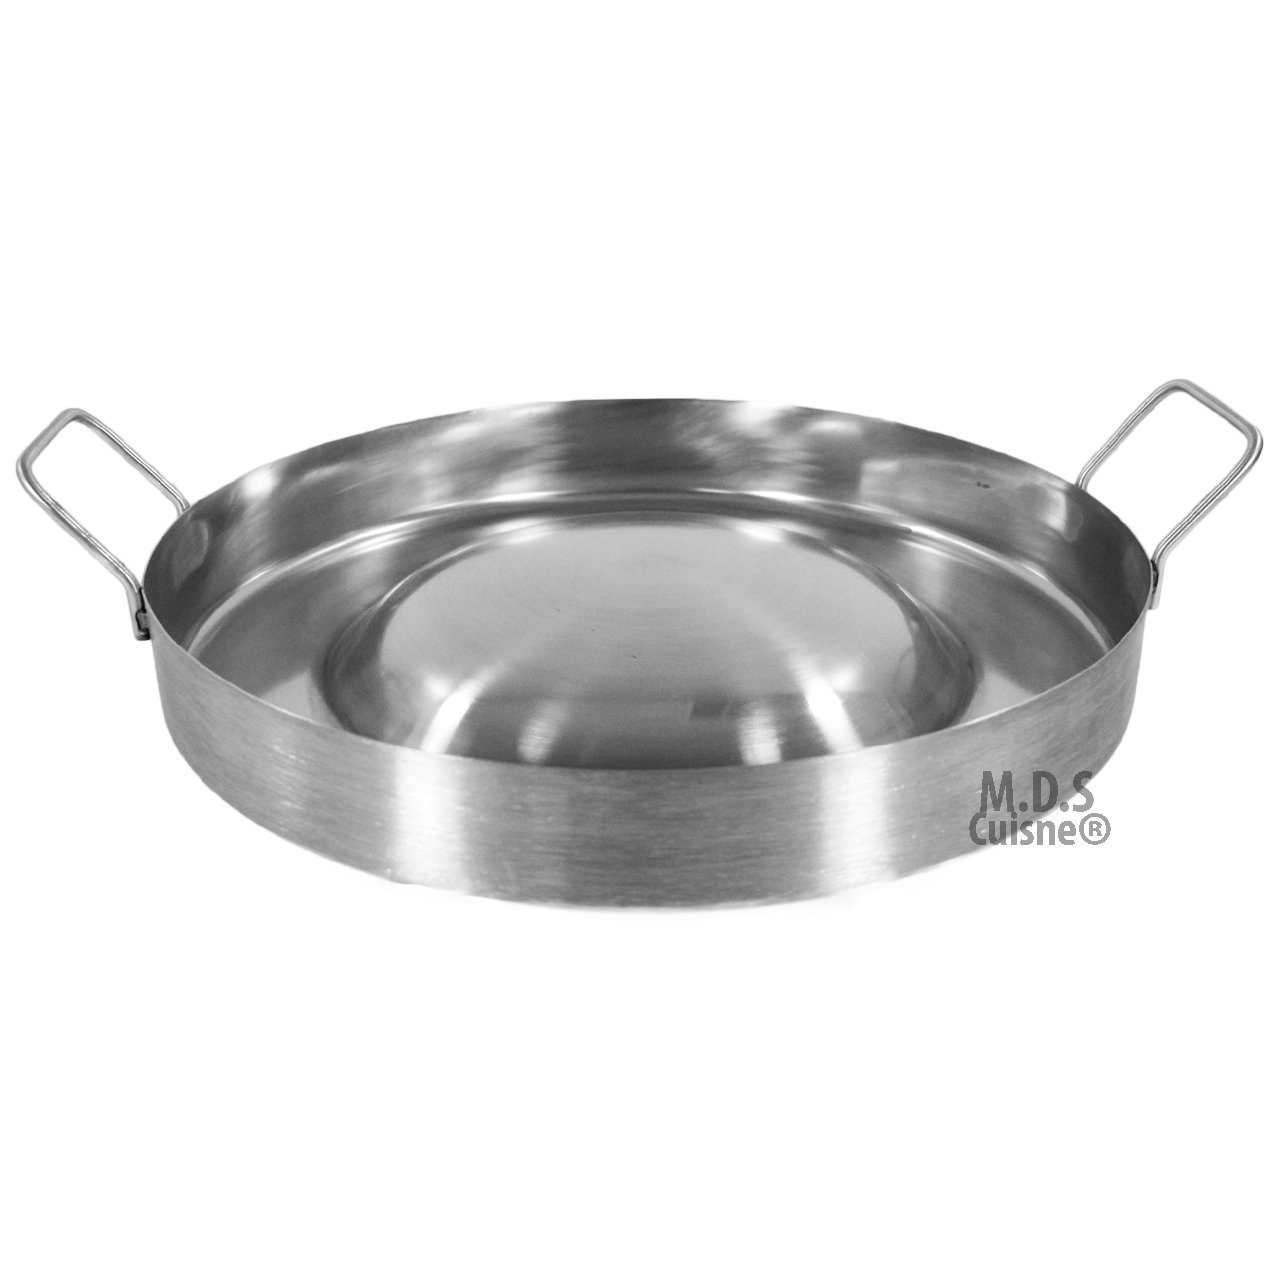 Stainless Steel Comal Convex 16'' Round Cook Griddle Taco Grill Pan Heavy Duty